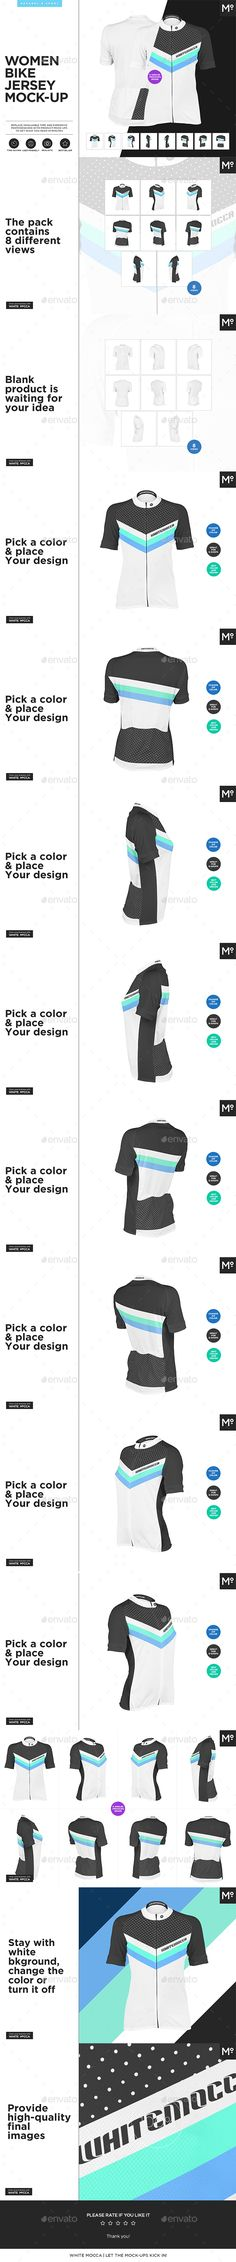 Download 900 Mockup Photoshop Ideas Mockup Photoshop Mockup Mockup Design